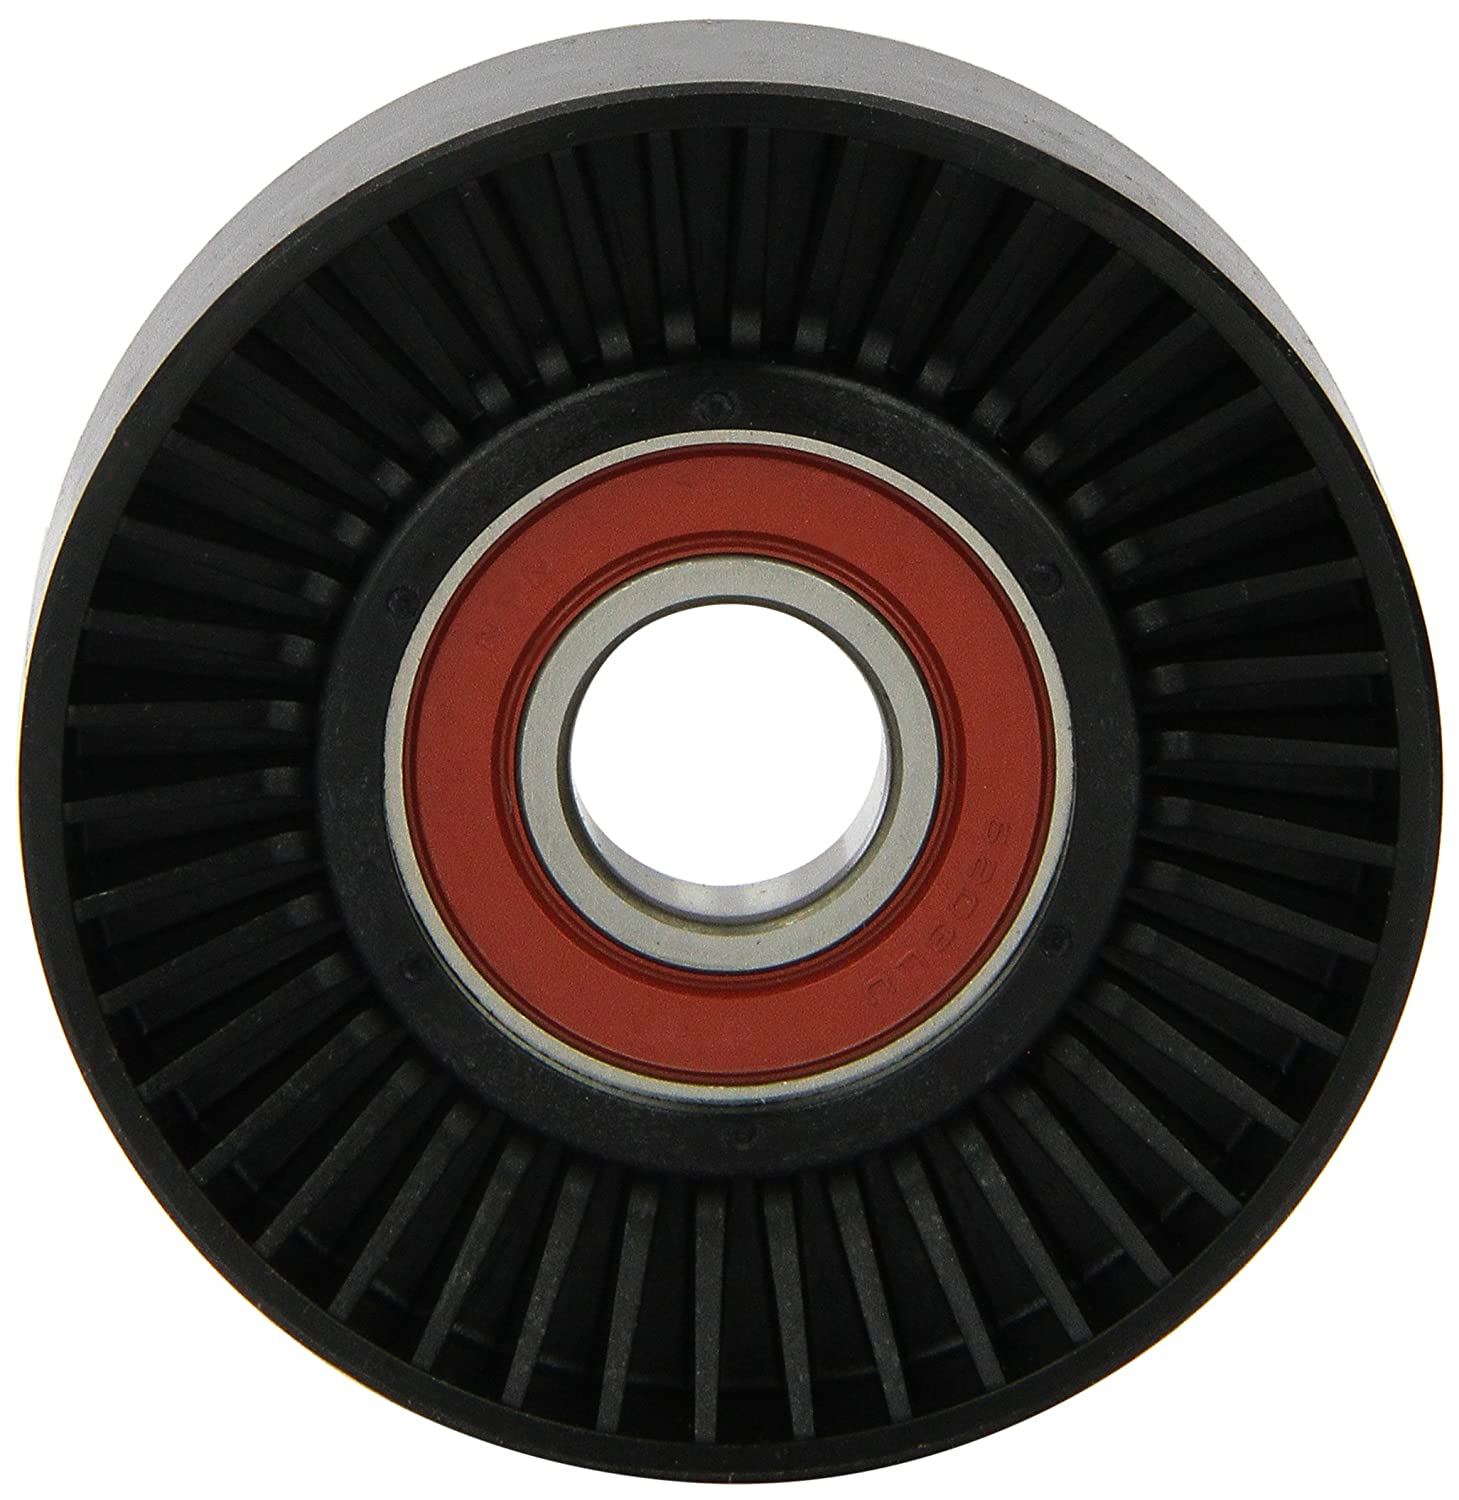 Dayco 89017 Tensioner & Idler Pulley